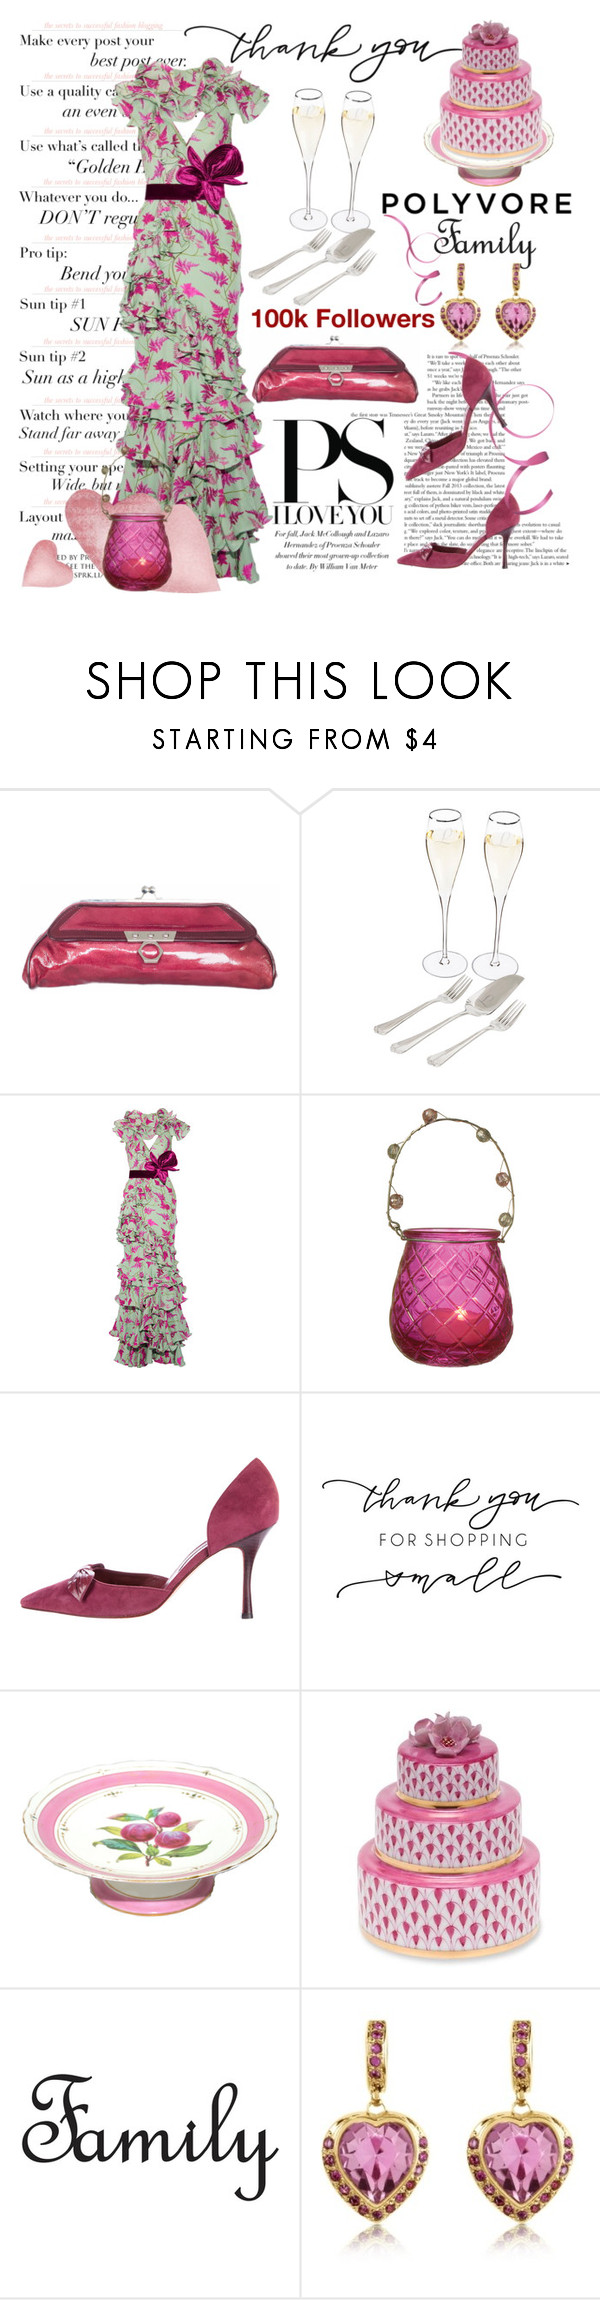 """""""Thank You, Polyvore Family"""" by conch-lady ❤ liked on Polyvore featuring Zac Posen, Cathy's Concepts, Johanna Ortiz, Manolo Blahnik, Herend, AZ Collection and thankyoupolyvorefamily"""